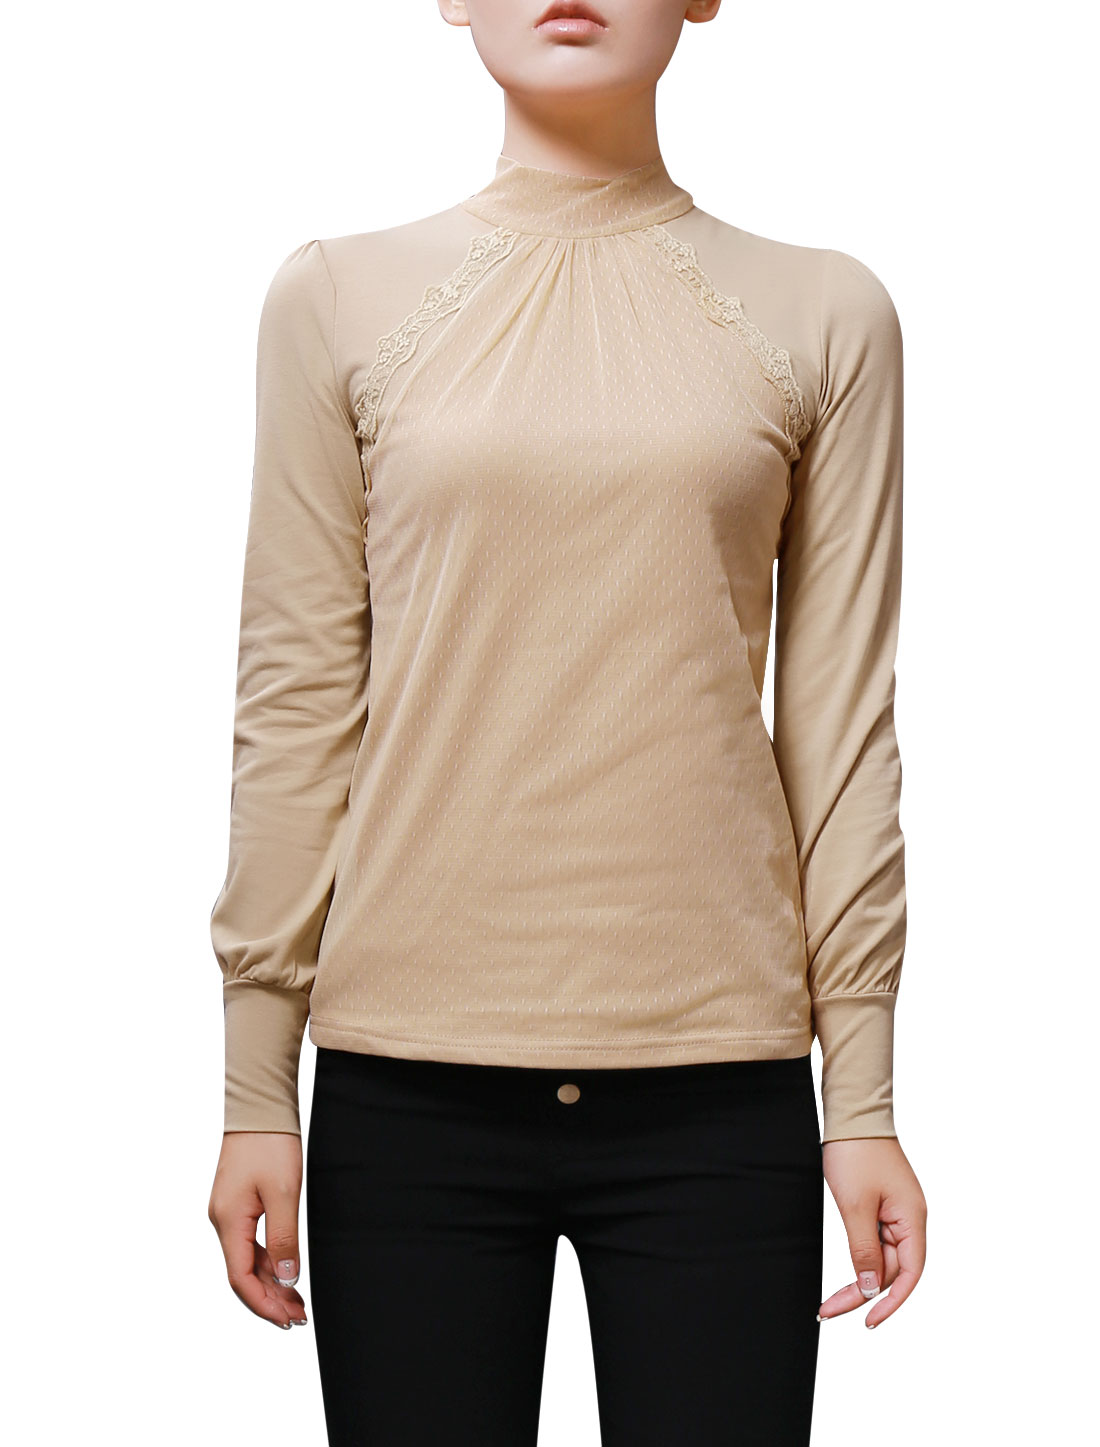 Lady Chic Beige Color Mesh Splice Front Design Casual Top Shirt S